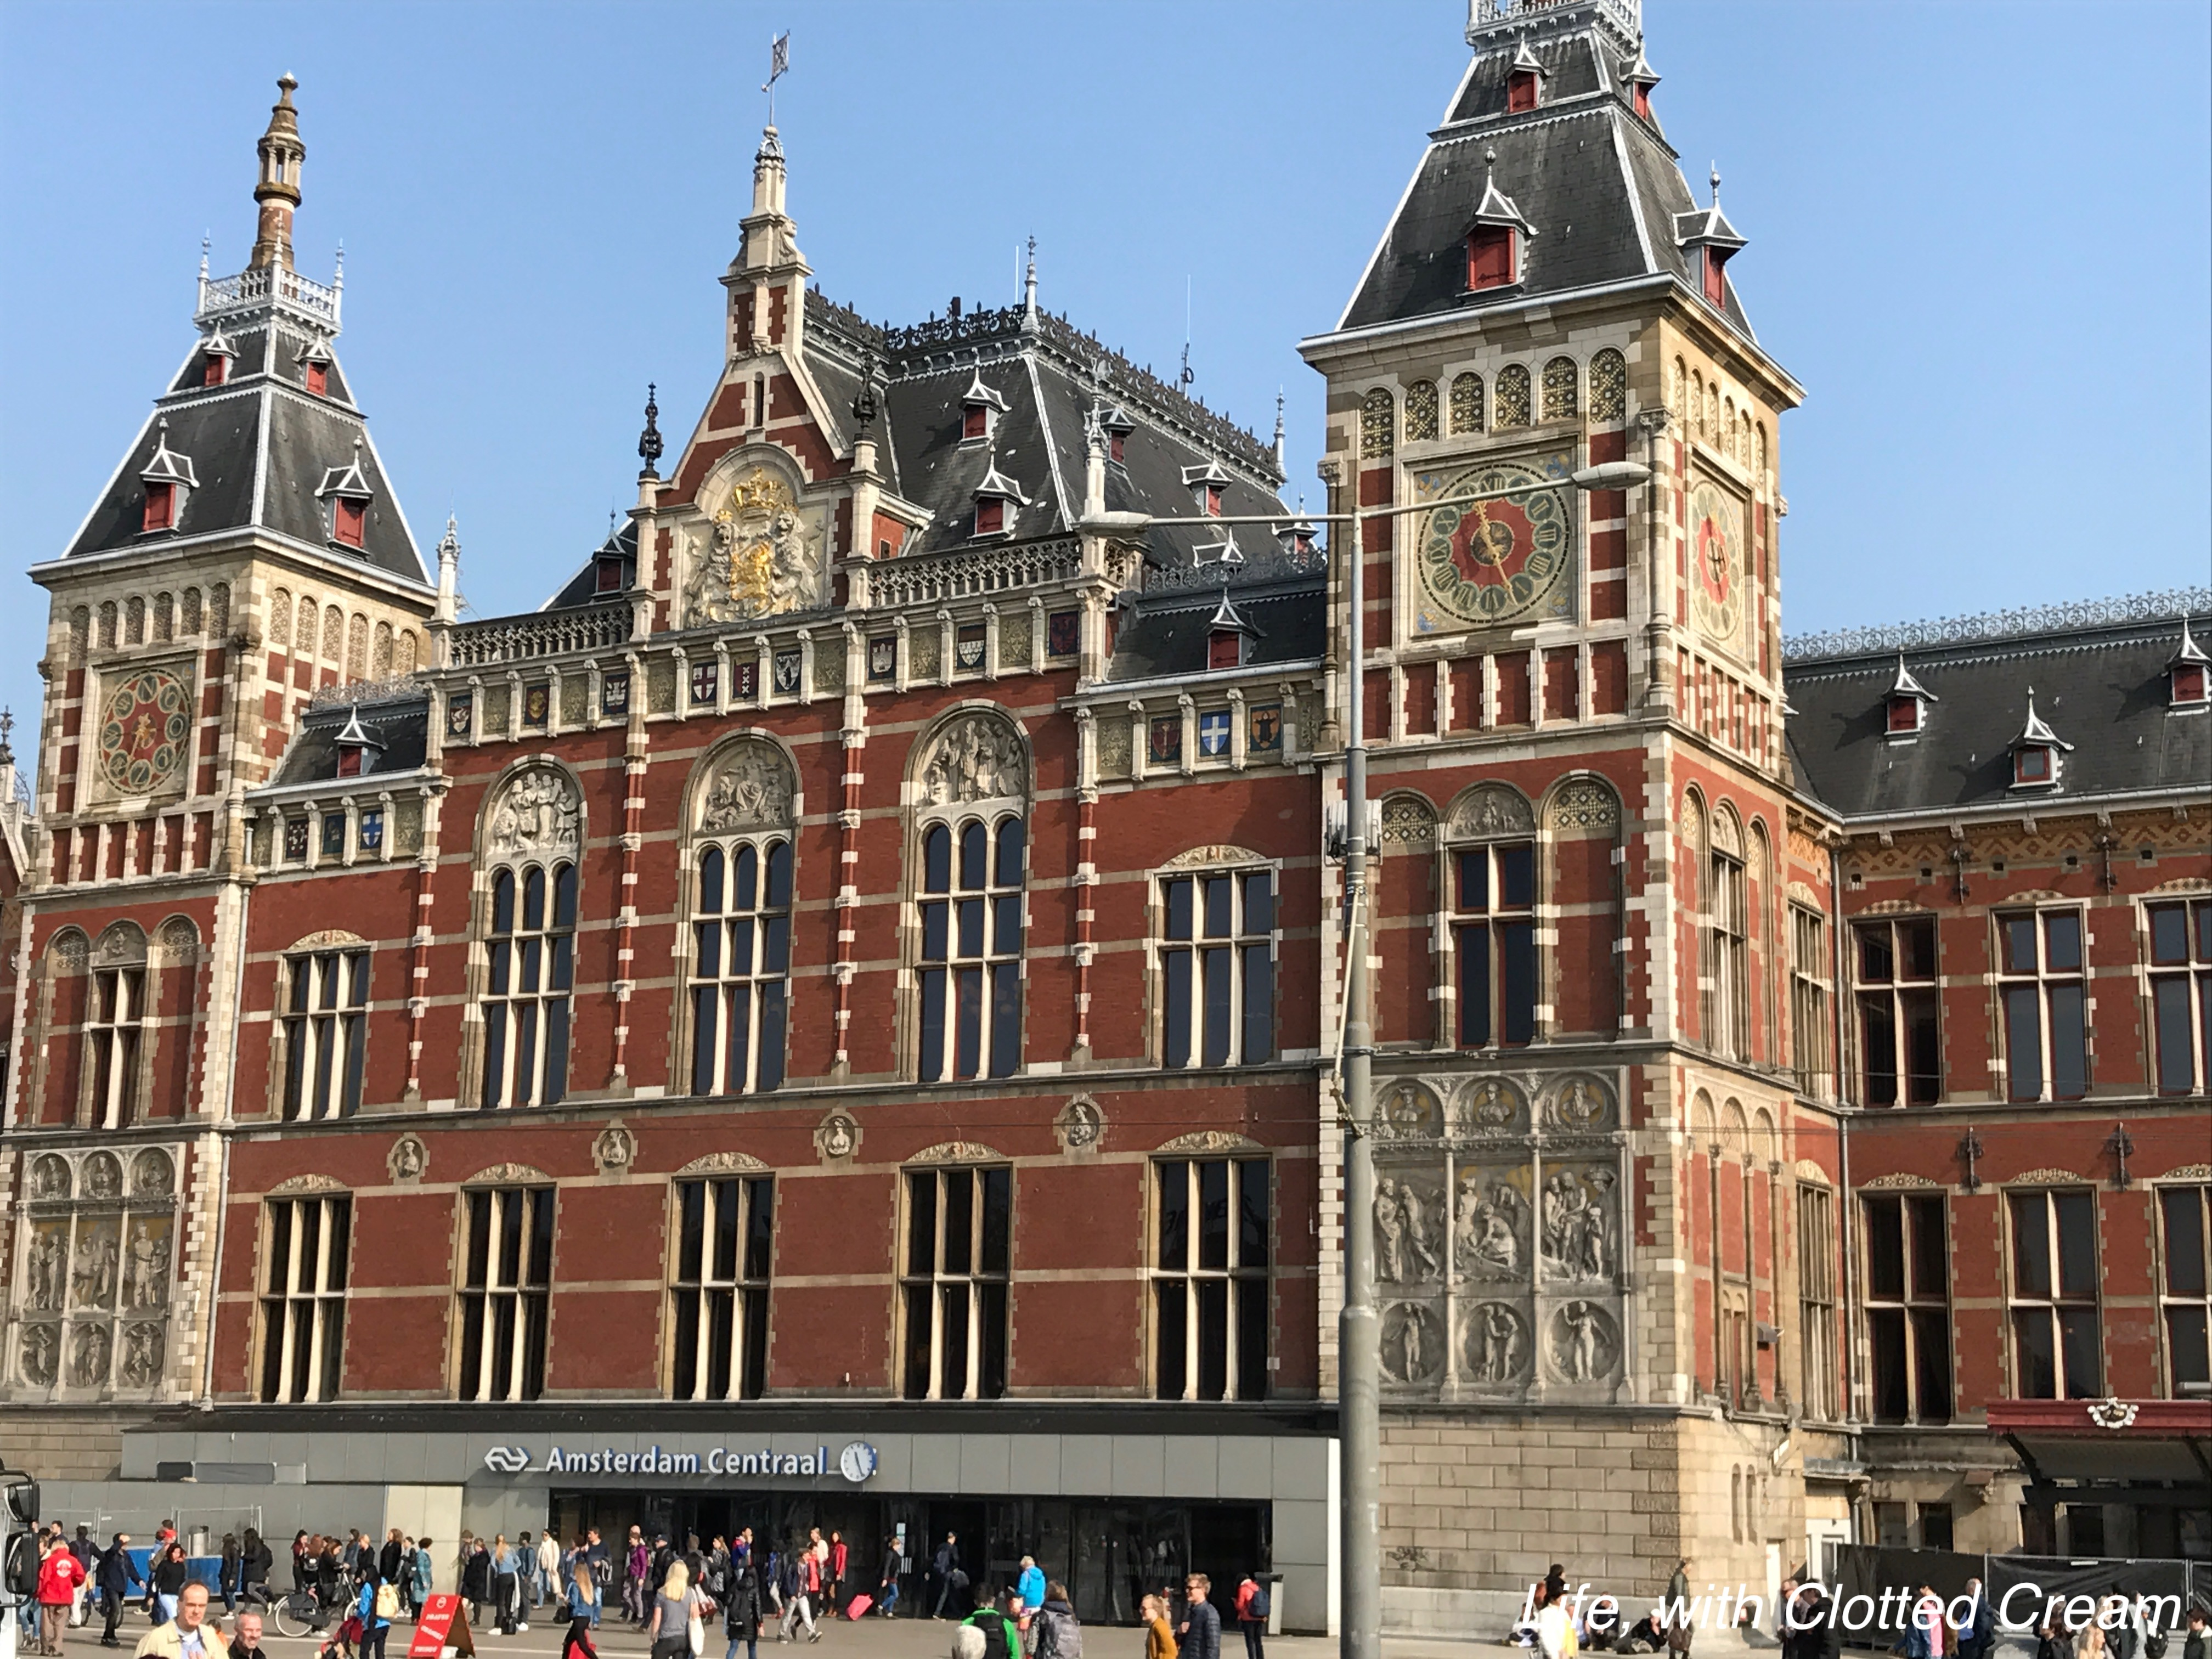 Magnificent Amsterdam centraal